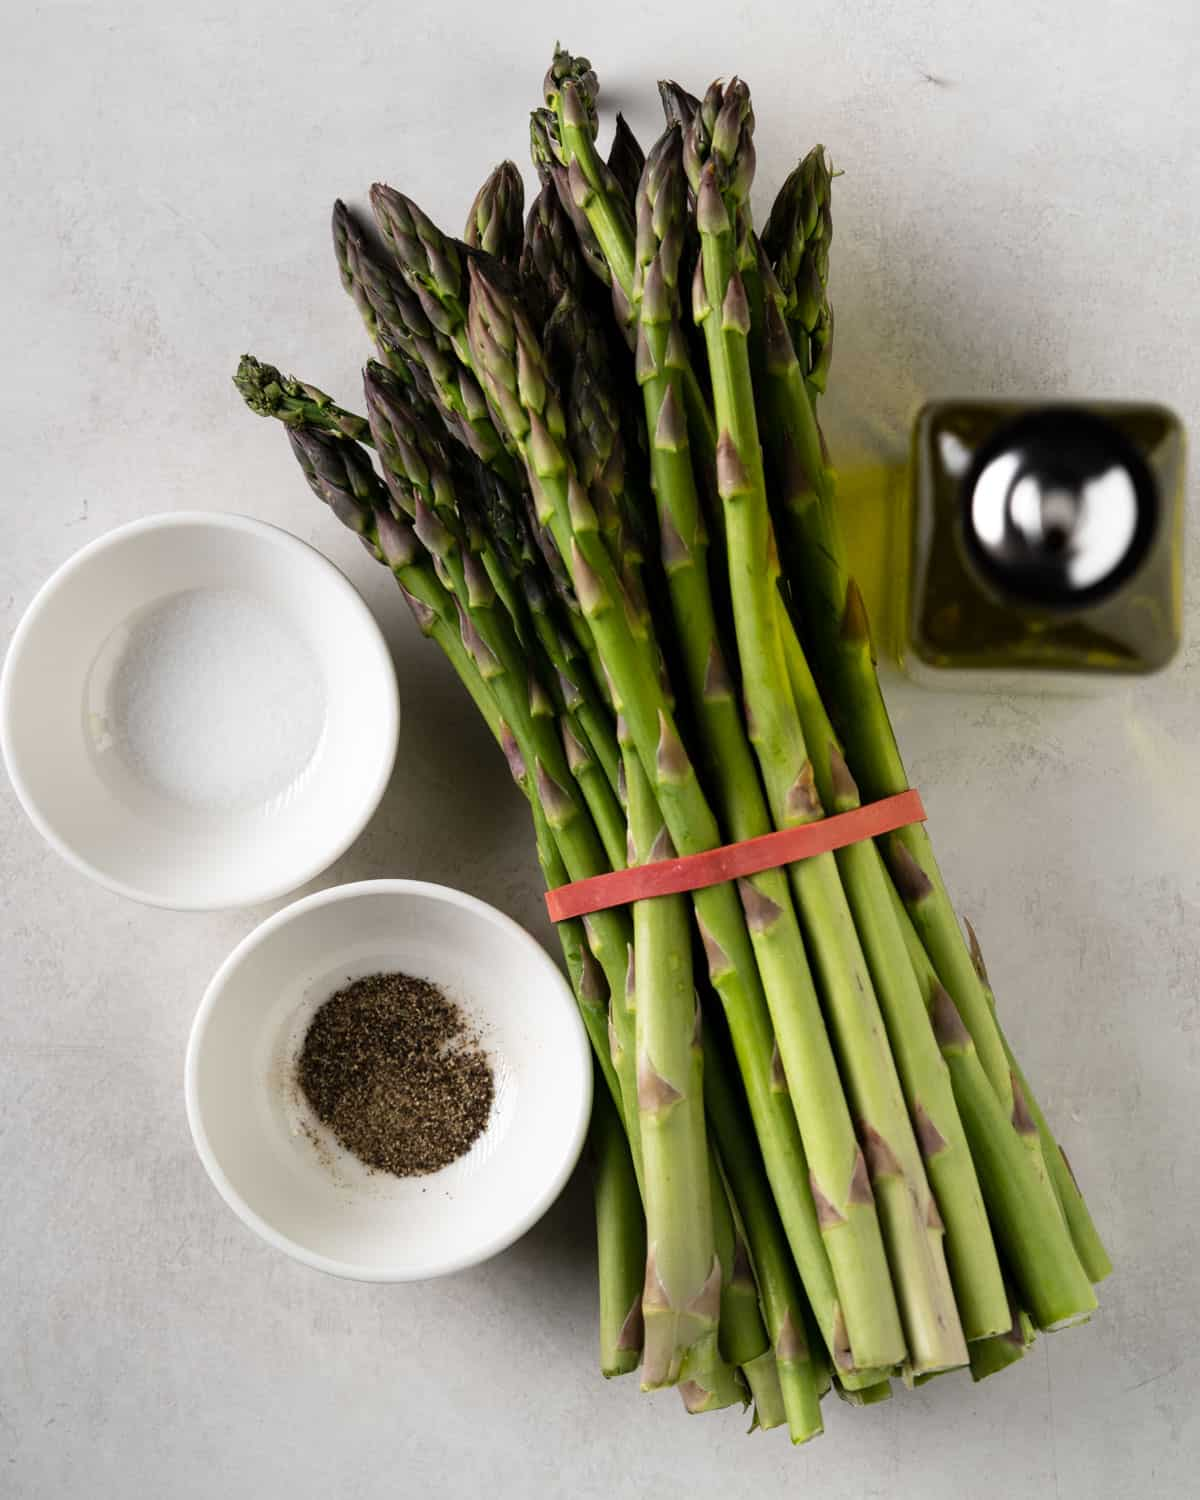 ingredients for the recipe: a bundle of asparagus, salt, pepper and olive oil